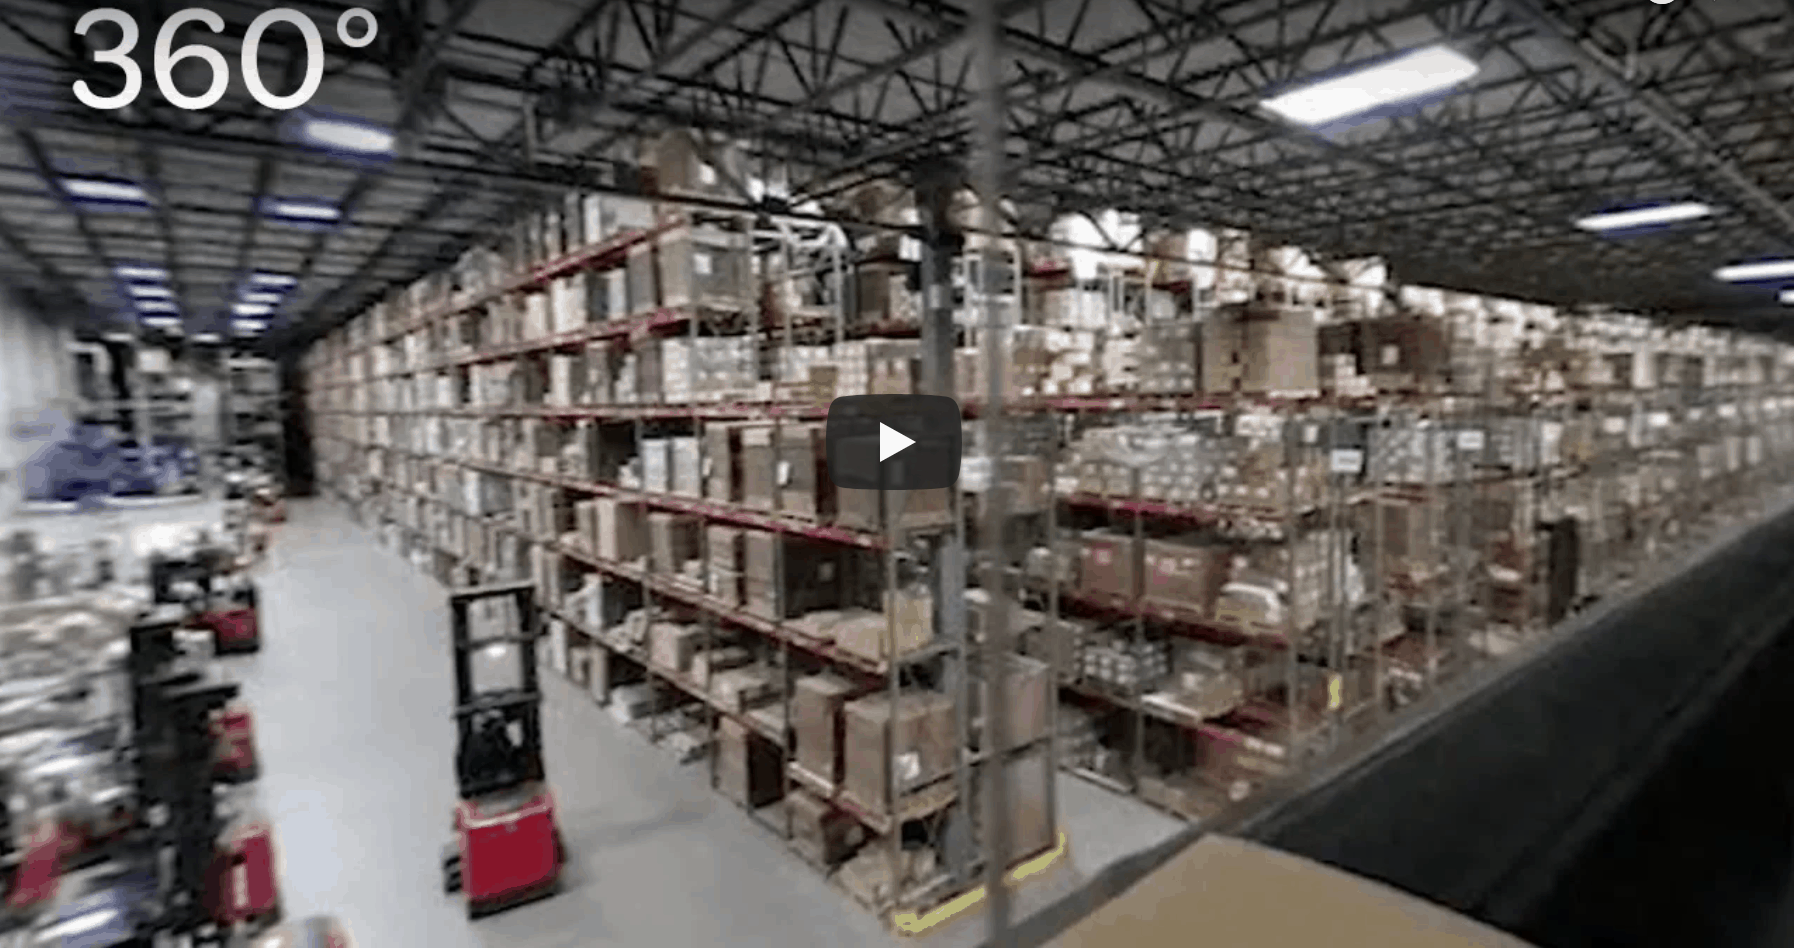 360 Video: Inside a book distribution warehouse - FreightWaves